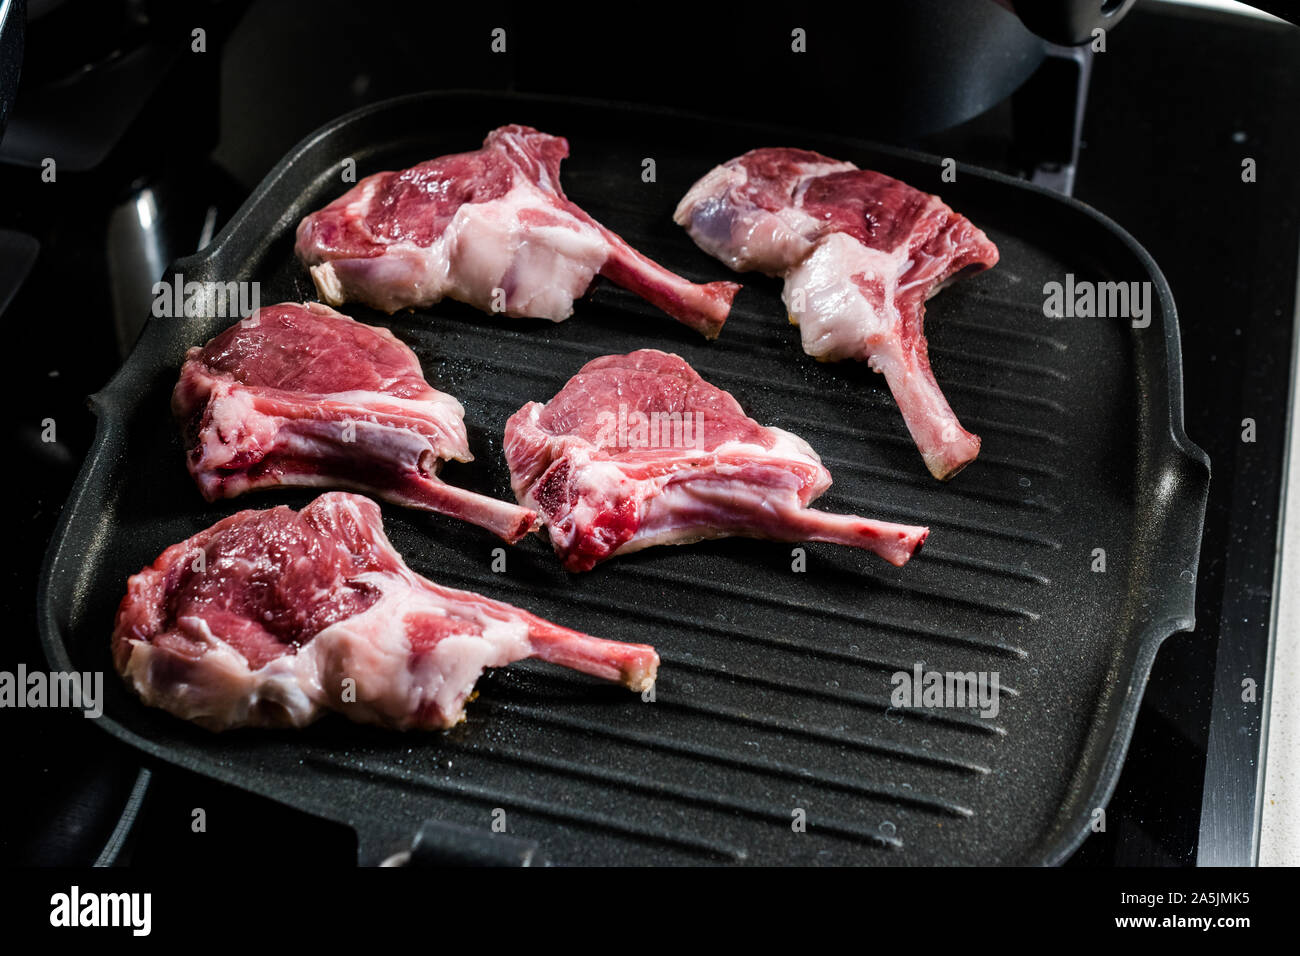 Raw Lamb Chops are Frying in Pan. Organic Meat Food. Stock Photo